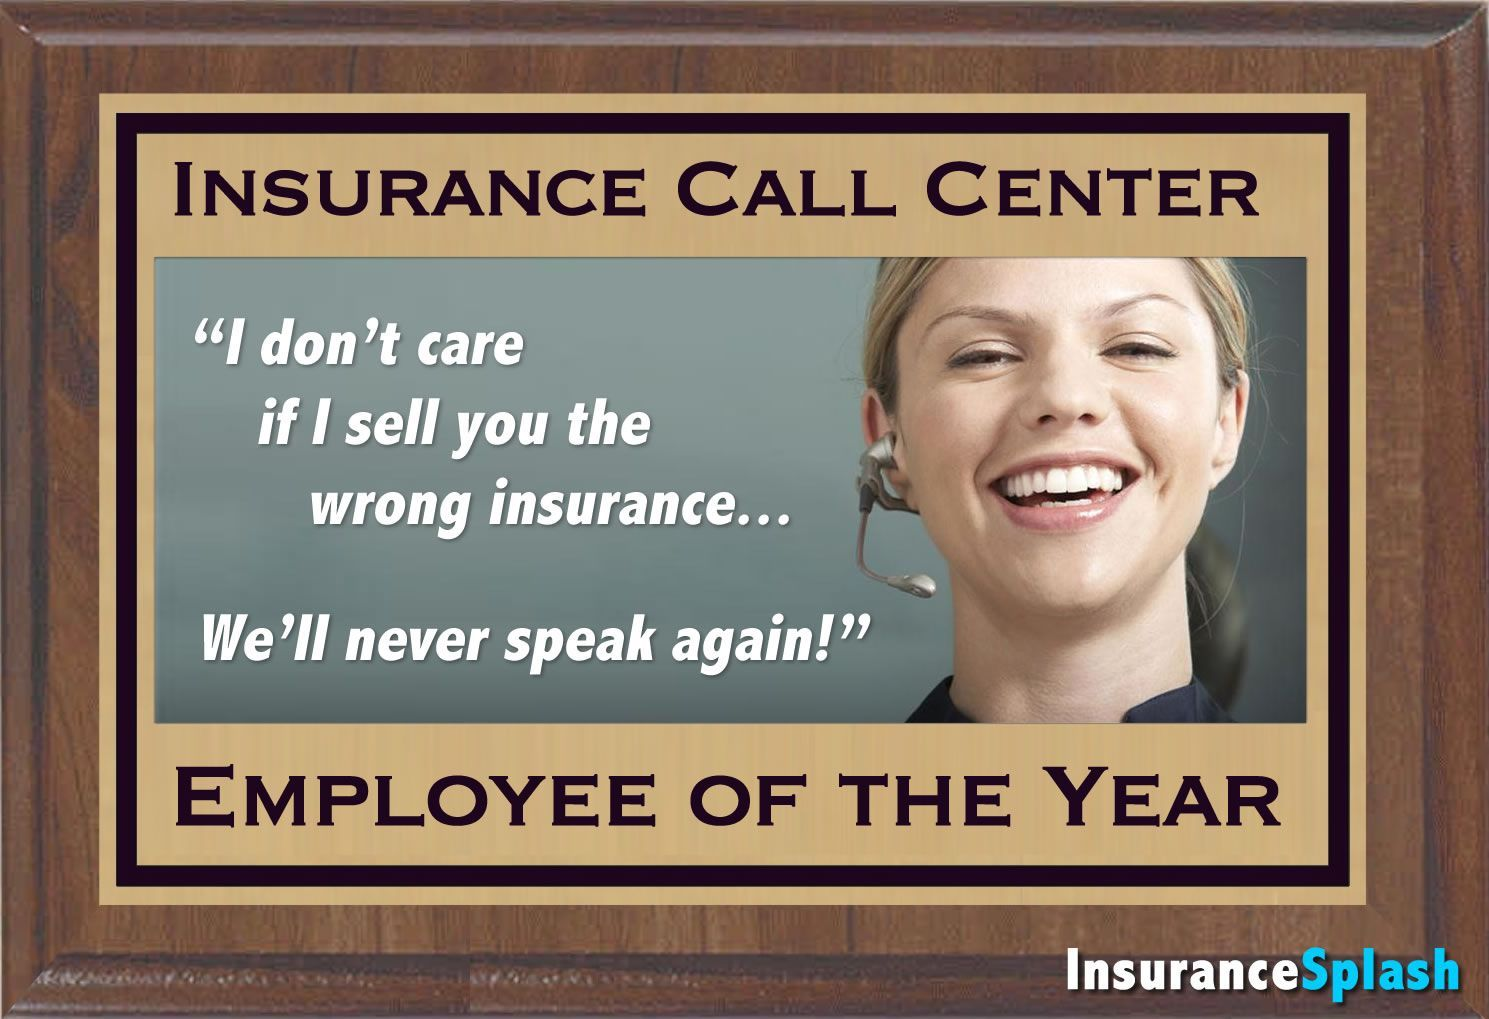 Insurance call center employee of the year with images